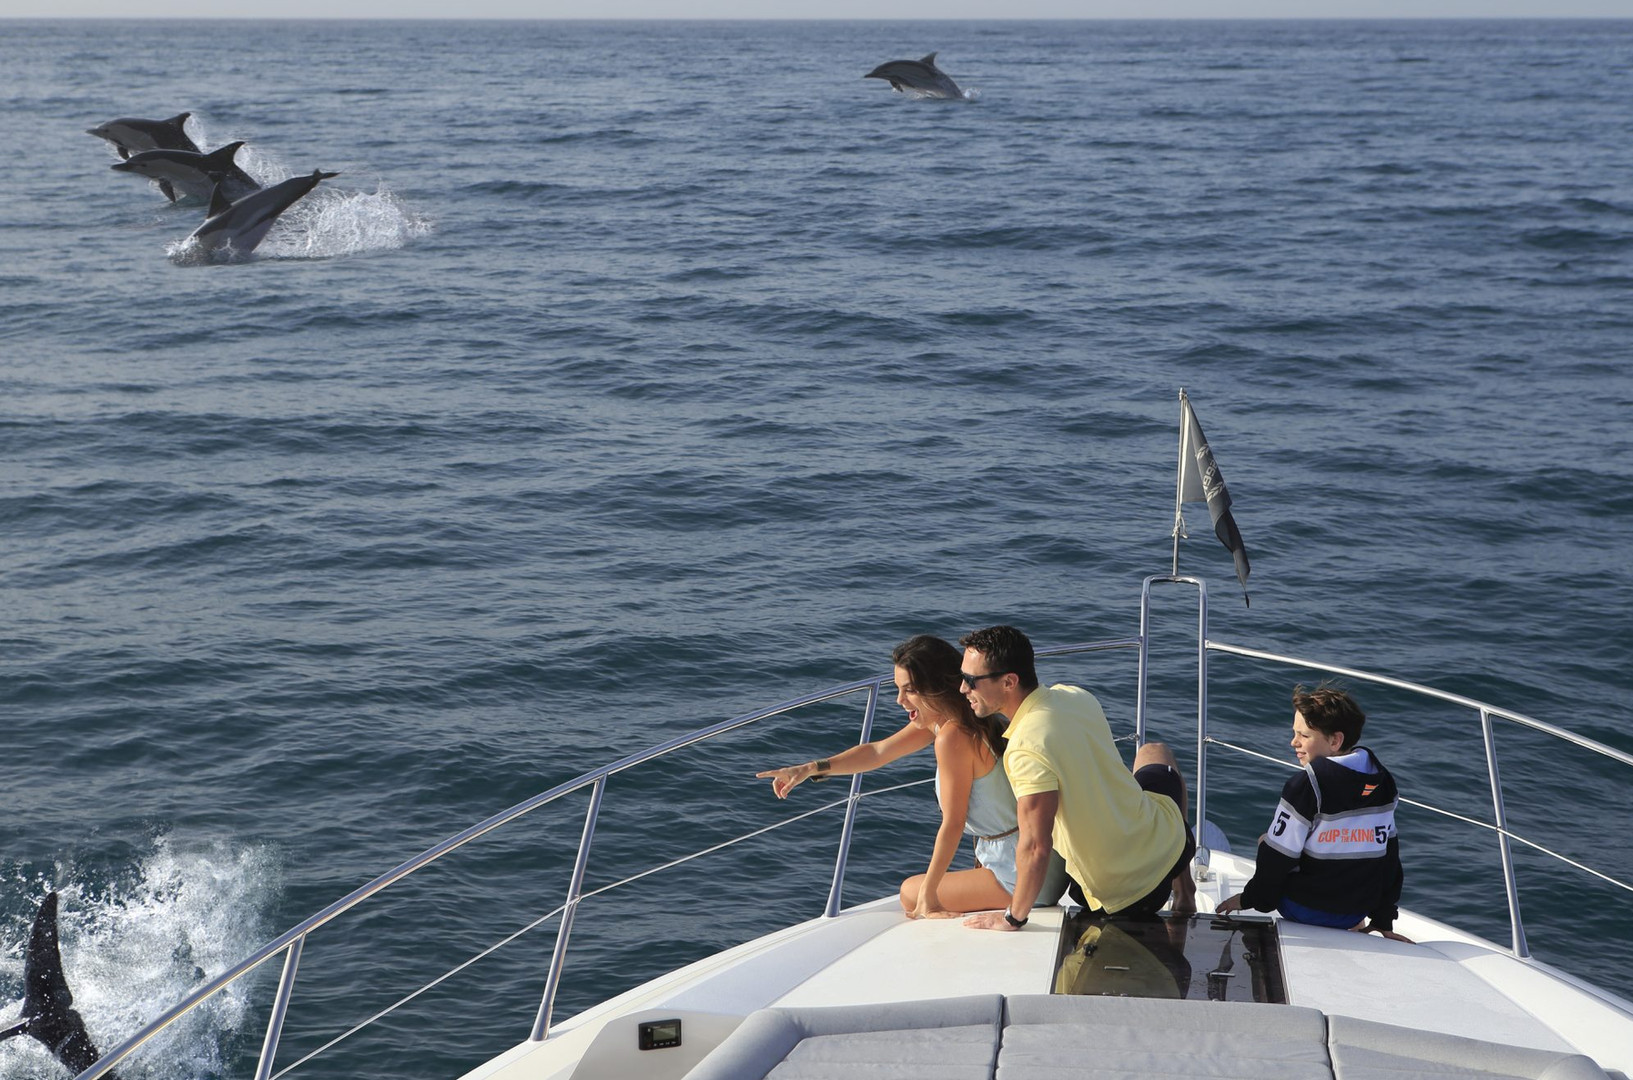 Whale and dolphin watching from the boat